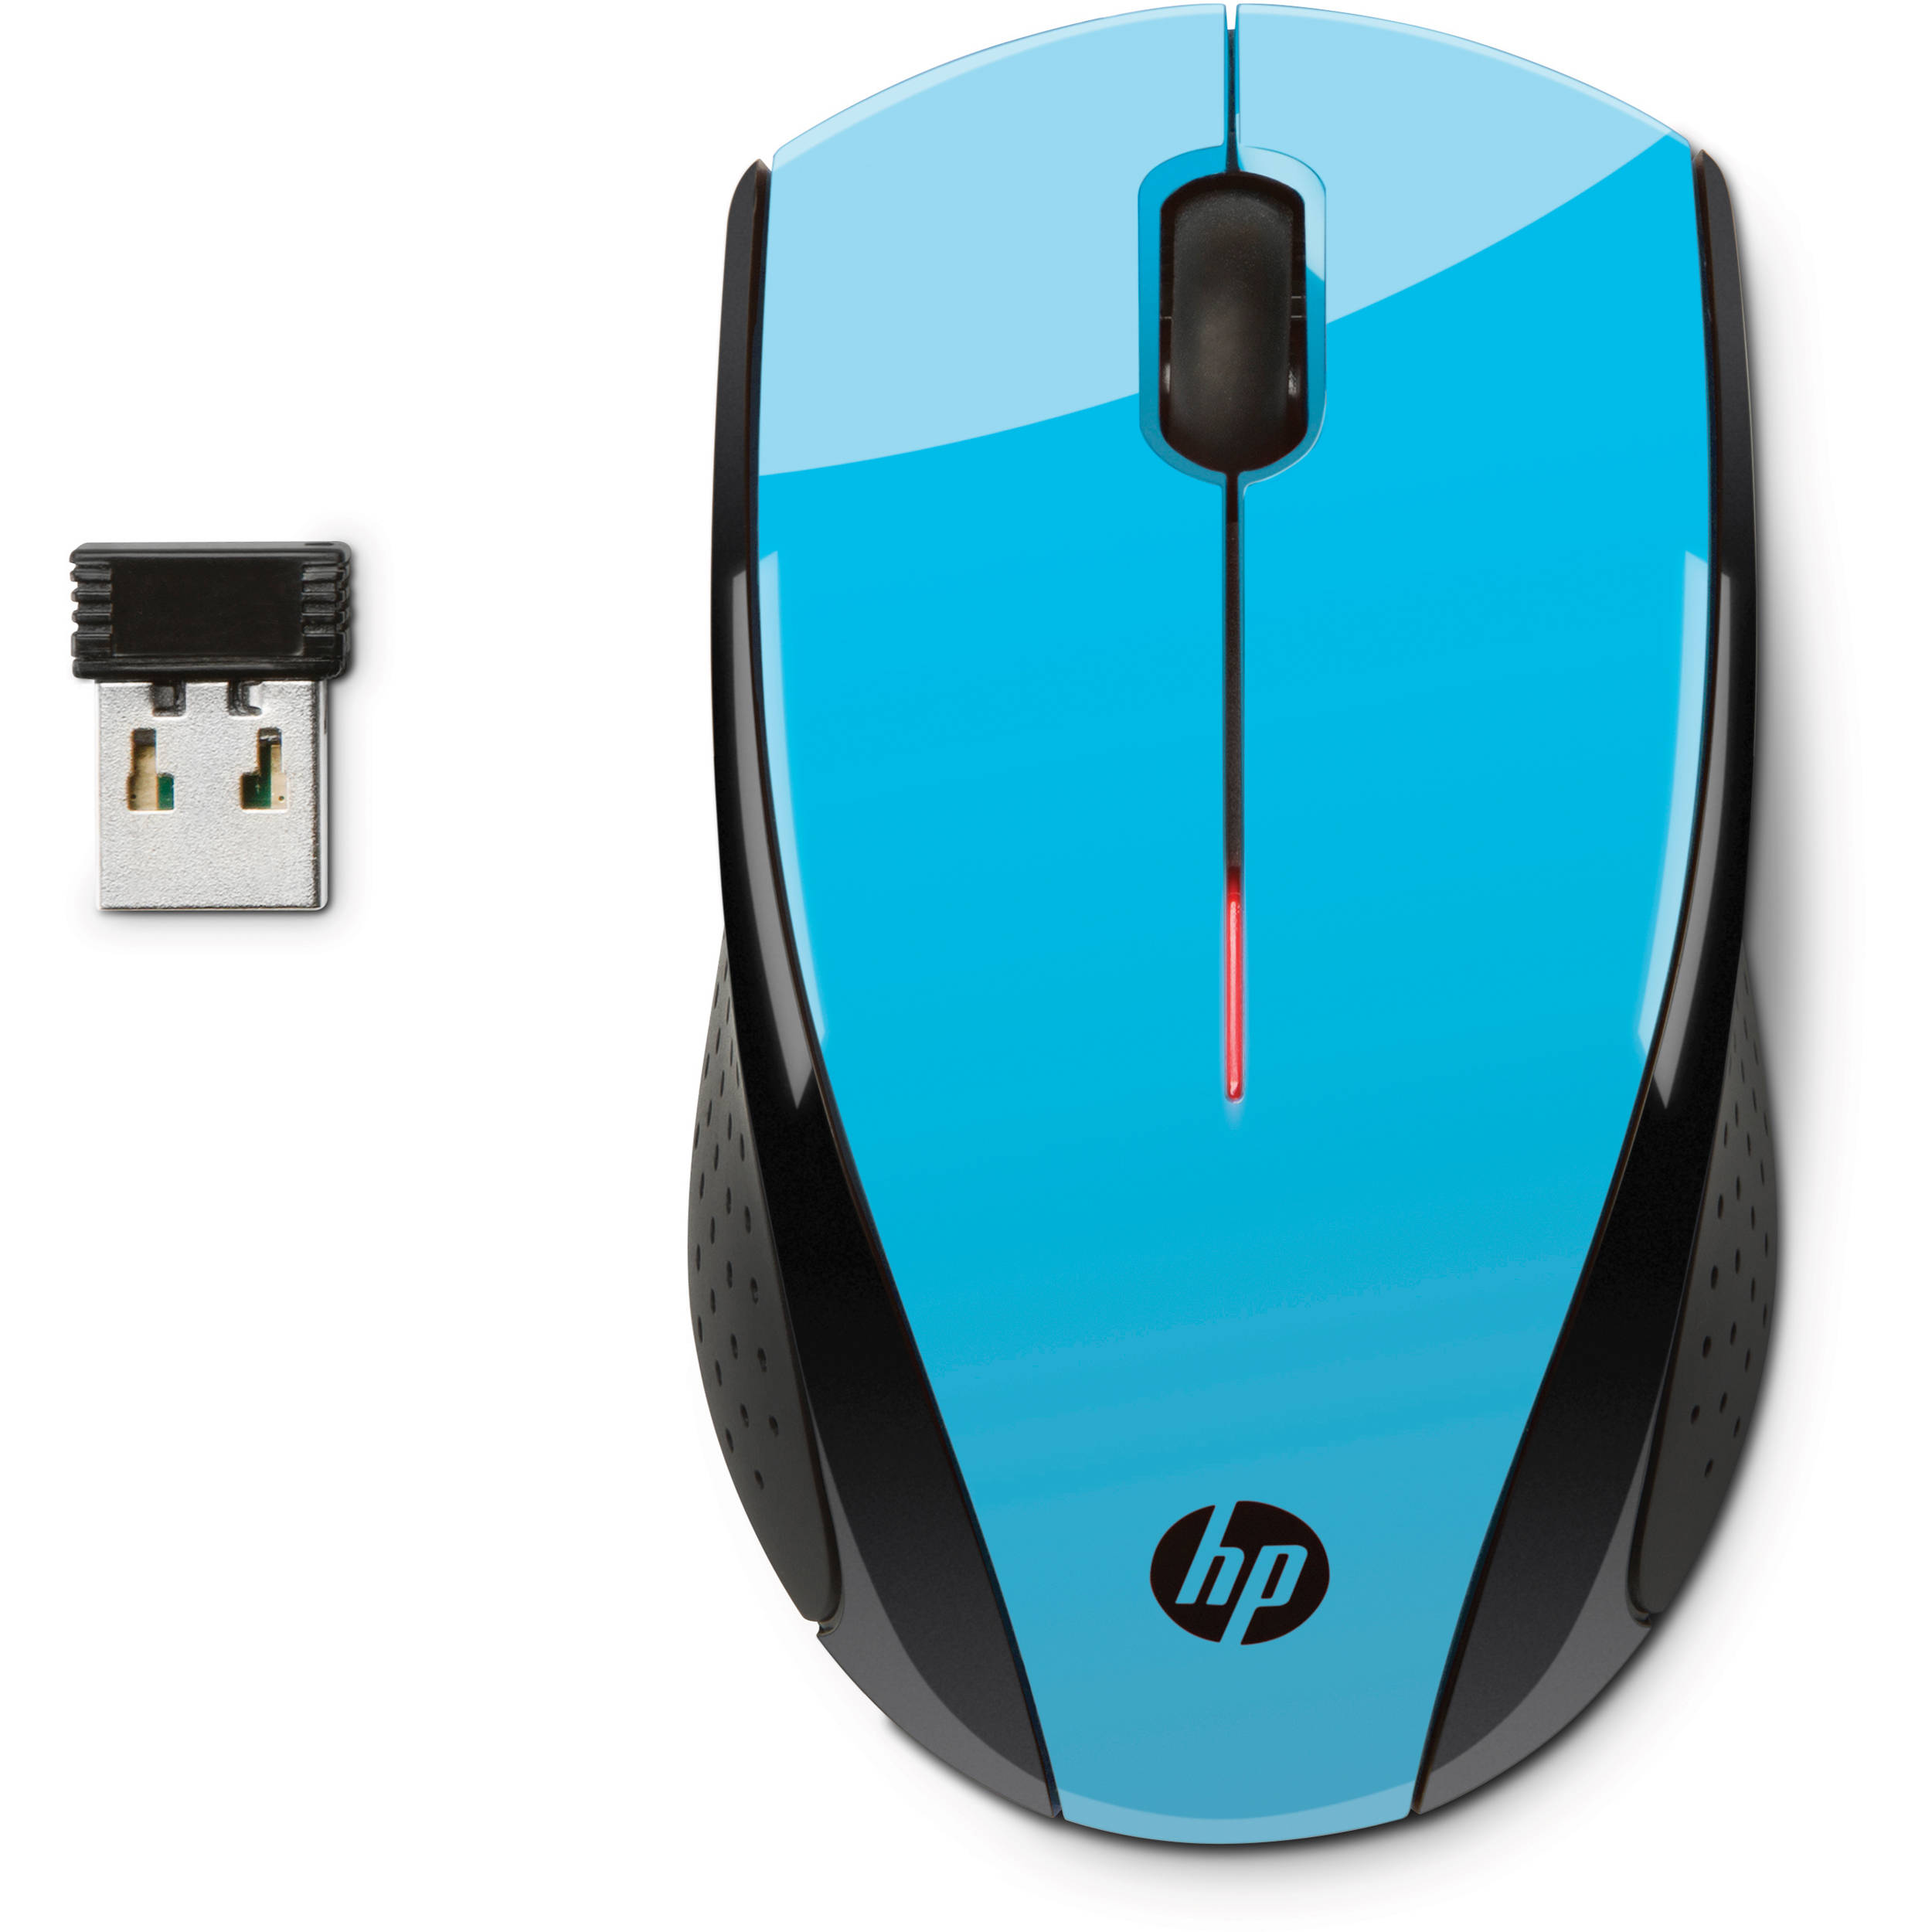 HP X3000 WIRELESS MOUSE DRIVER FOR WINDOWS 7